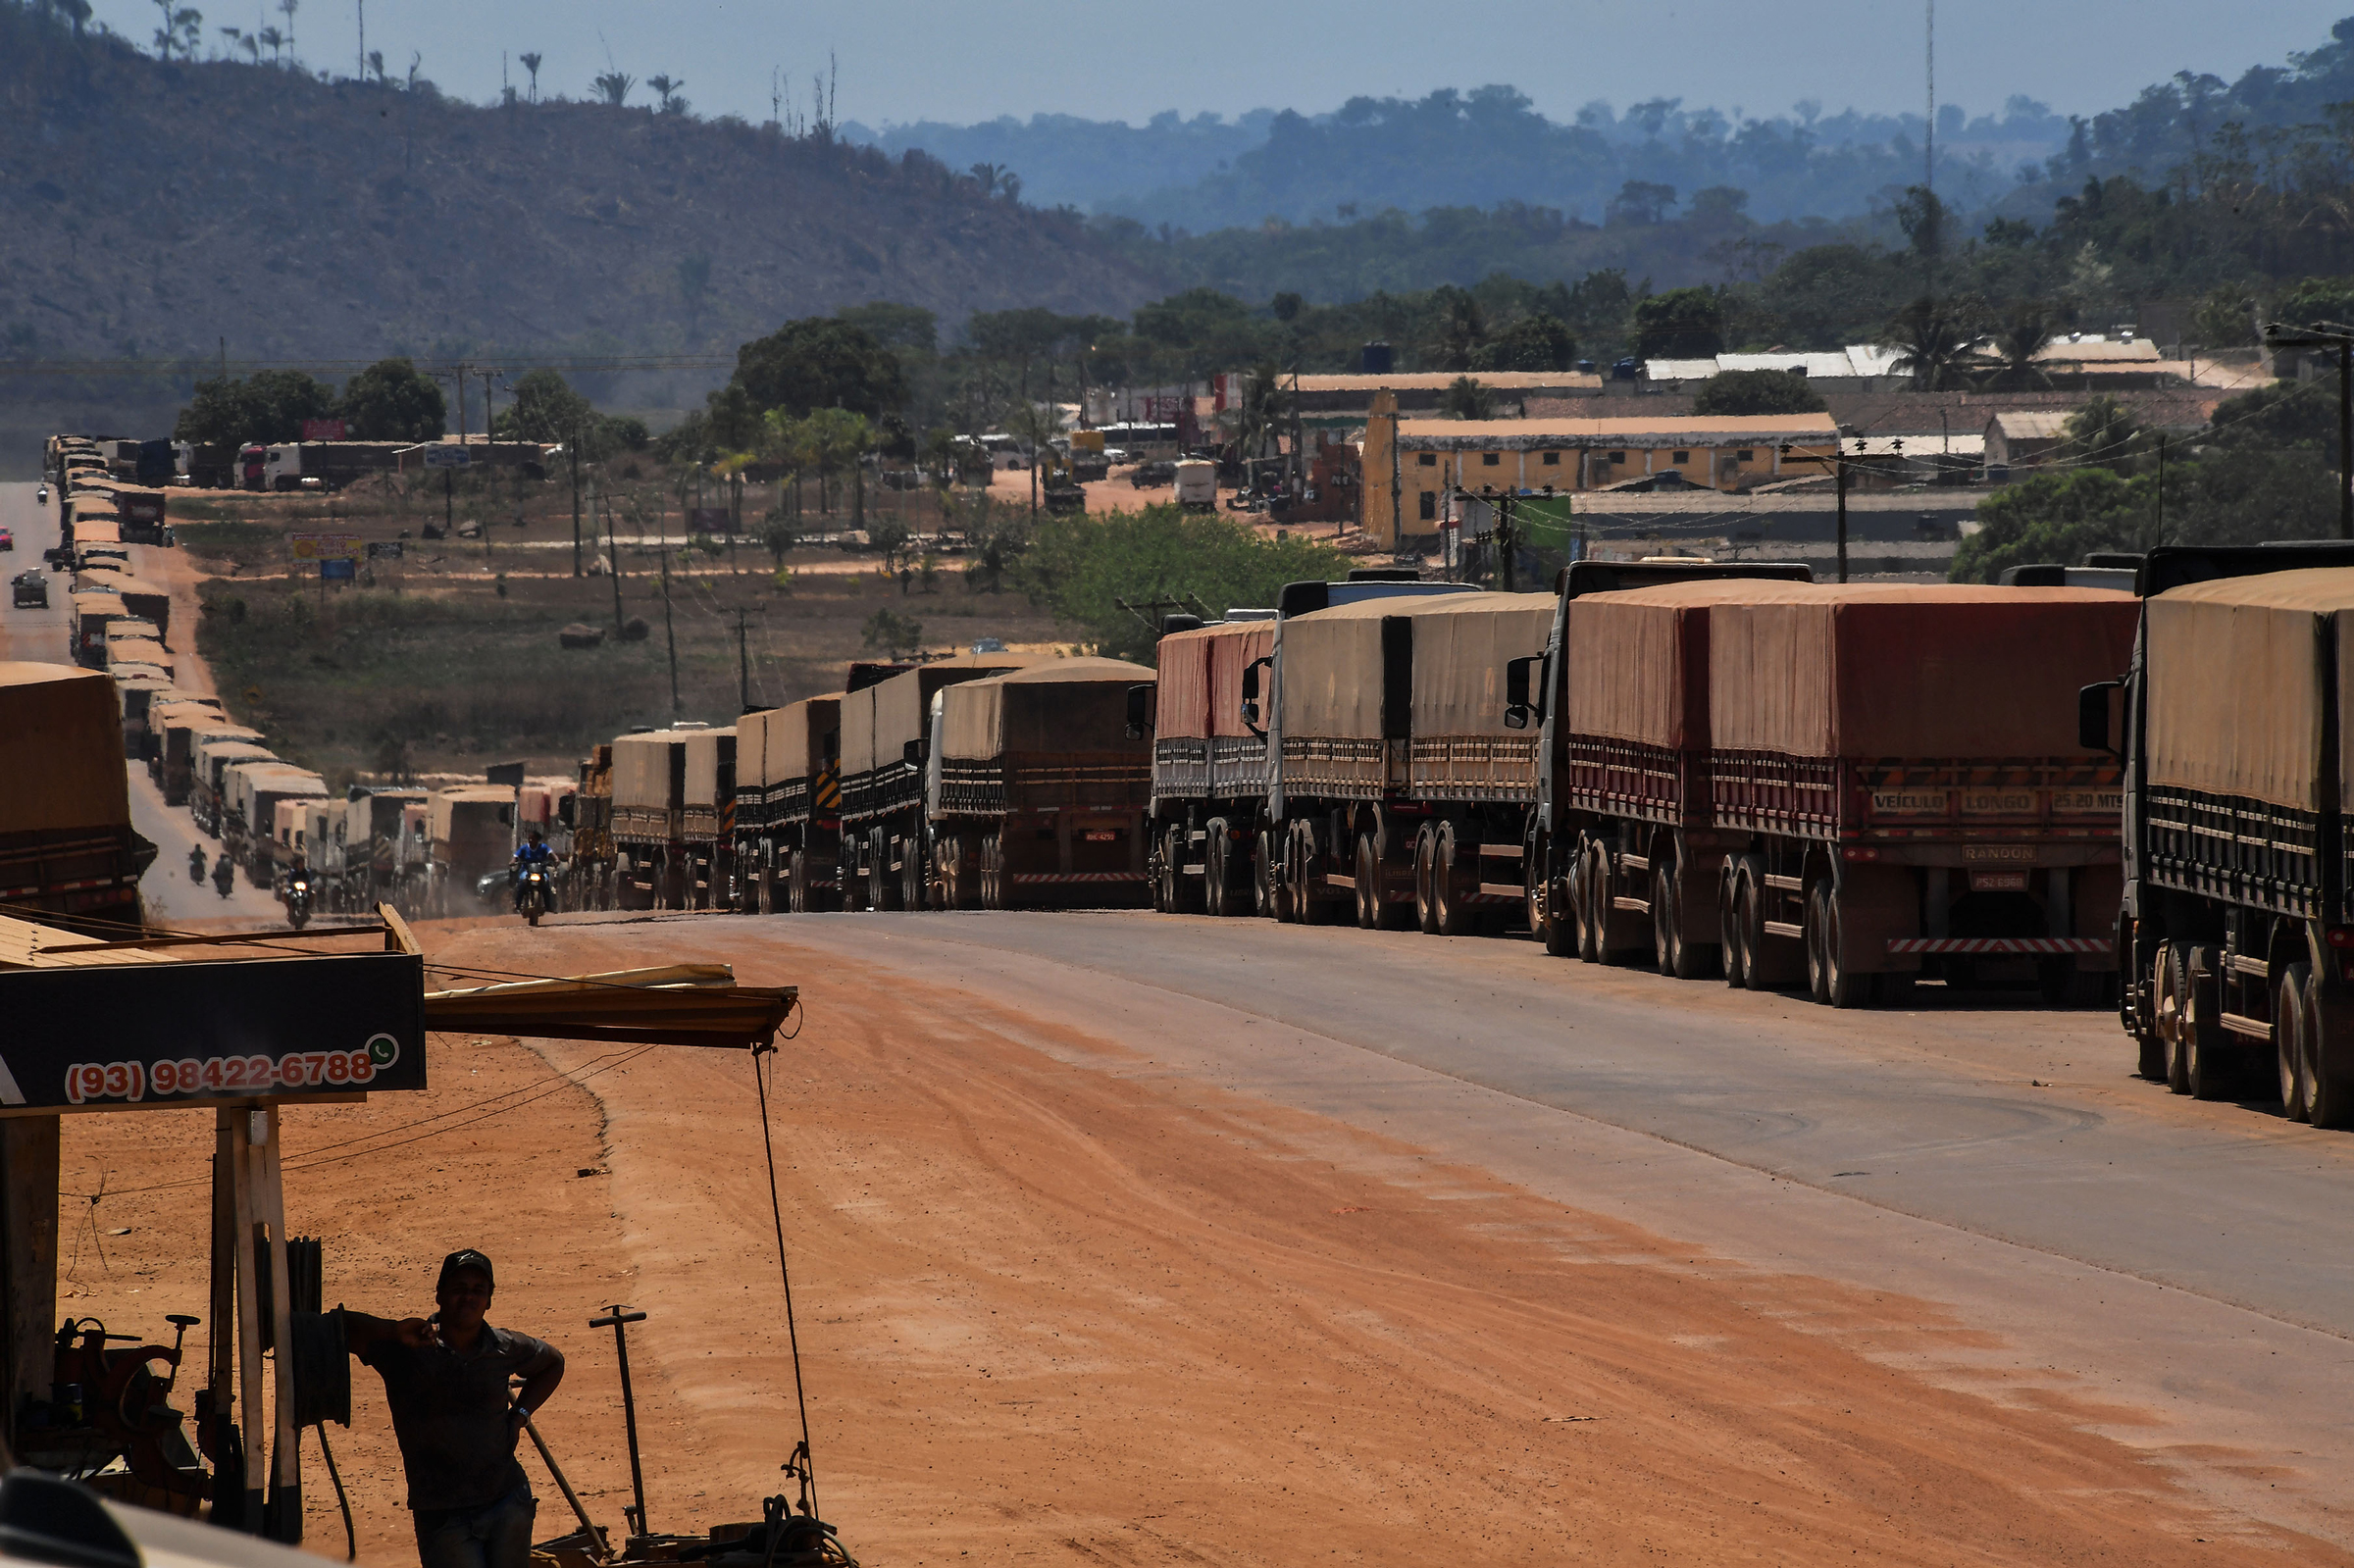 "Truckers line up on the BR 163 highway, blocked by ""garimpeiros"" -illegal gold miners- during a protest in Morais Almeida, Itaituba, Para state, Brazil, on September 13, 2019. - Members of an indigenous tribe in the Amazon in northern Brazil on Friday called for wildcat miners to be allowed to prospect for gold on their land, saying it was a source of income. (Photo by NELSON ALMEIDA / AFP) (Photo credit should read NELSON ALMEIDA/AFP/Getty Images)"